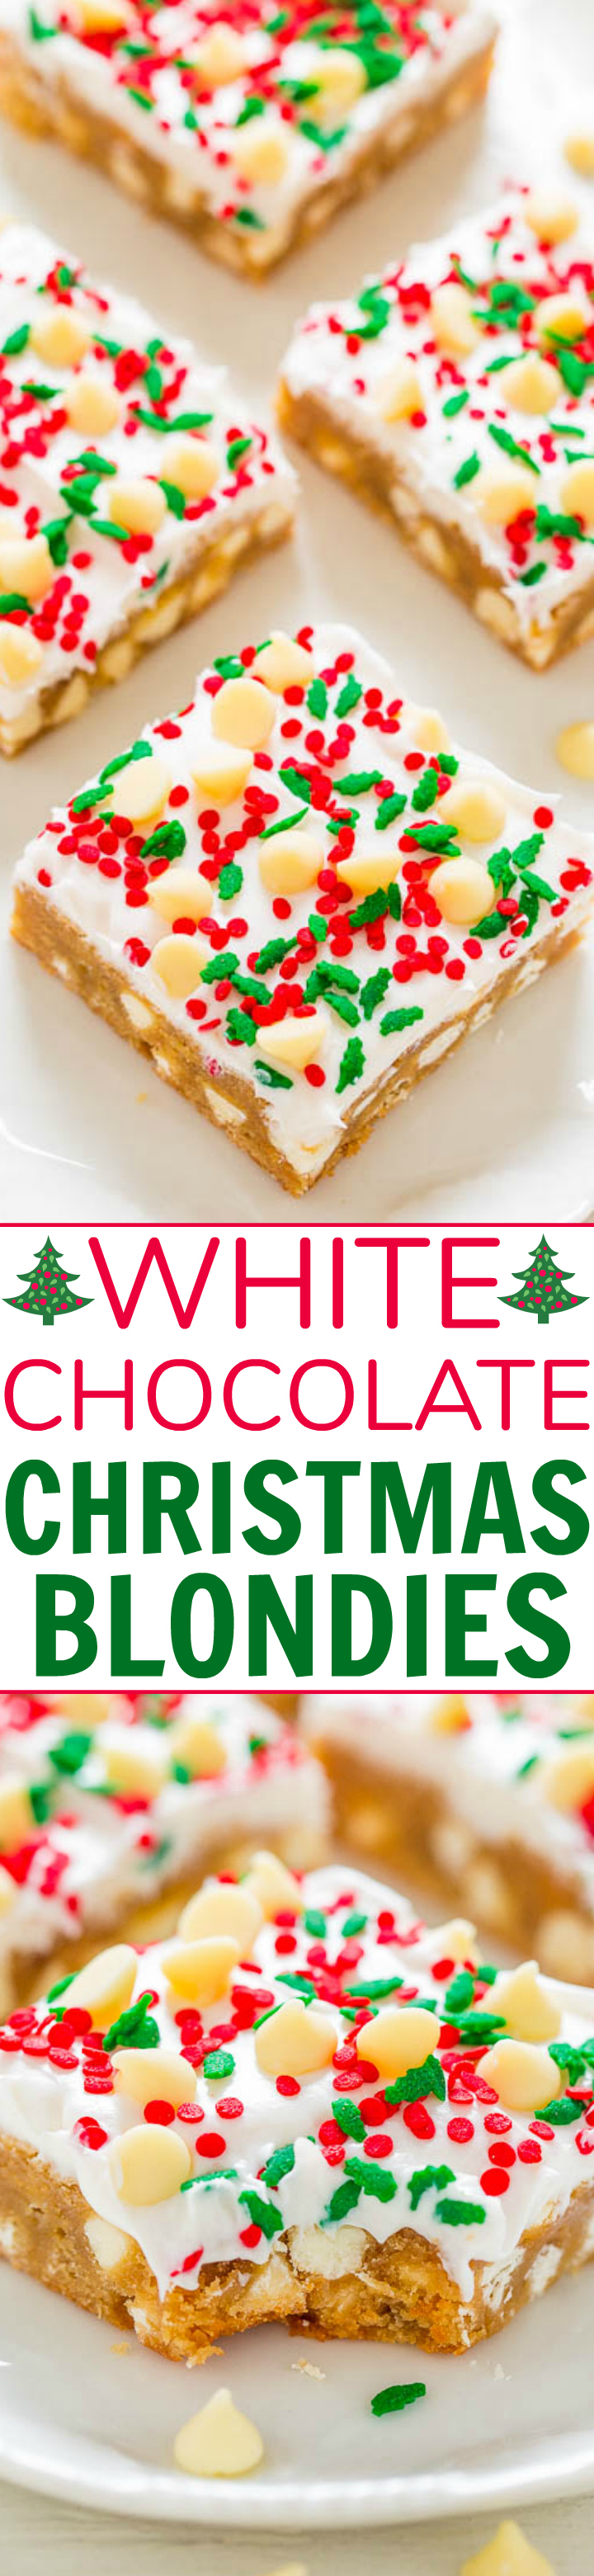 White Chocolate Christmas Blondies with Cream Cheese Frosting - SOFT, buttery blondies loaded with white chocolate, sprinkles, and tangy cream cheese frosting!! EASY and perfect for Christmas parties and holiday events!!